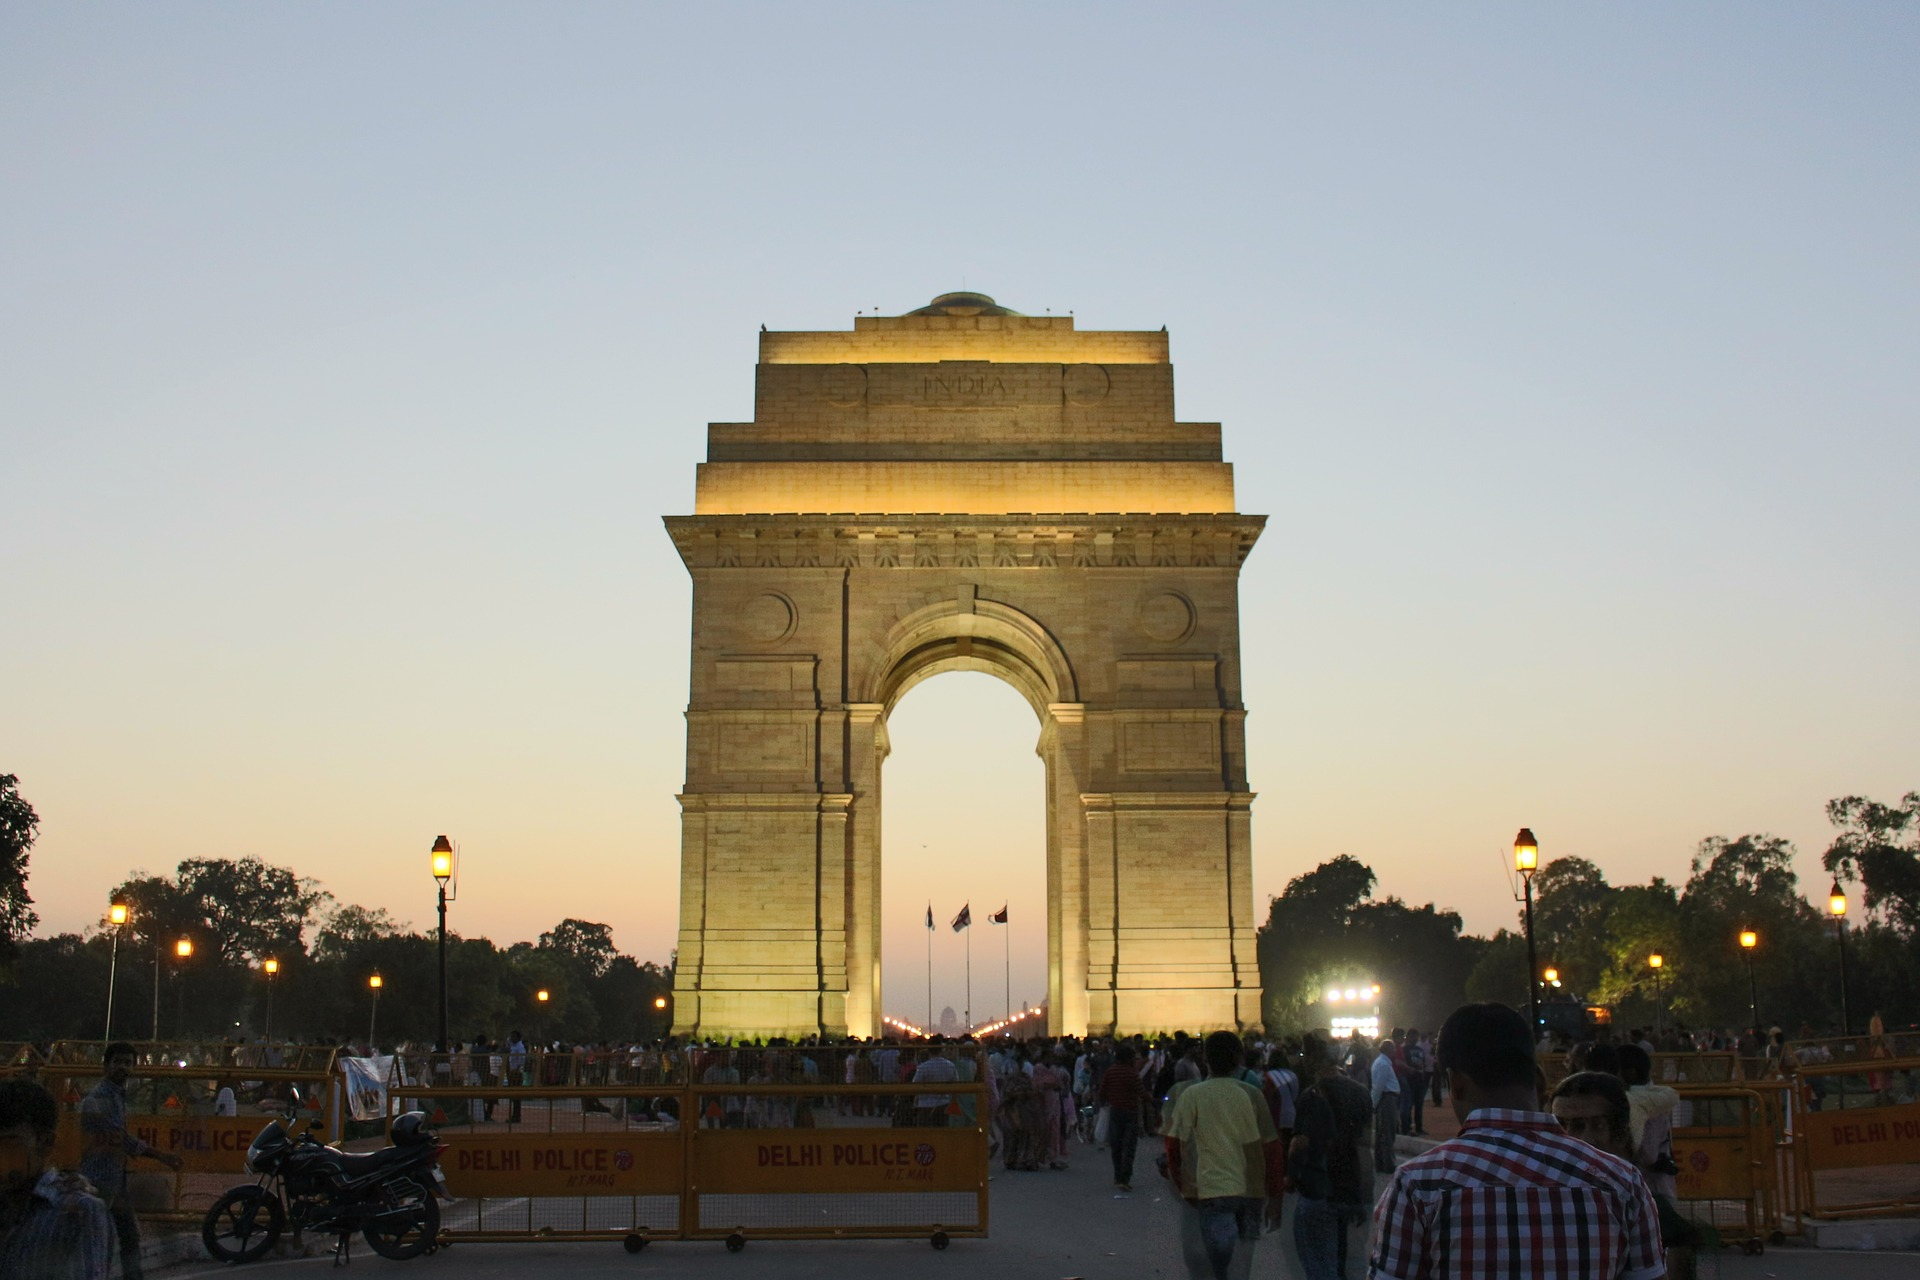 India Gate, Monument in New Delhi, India